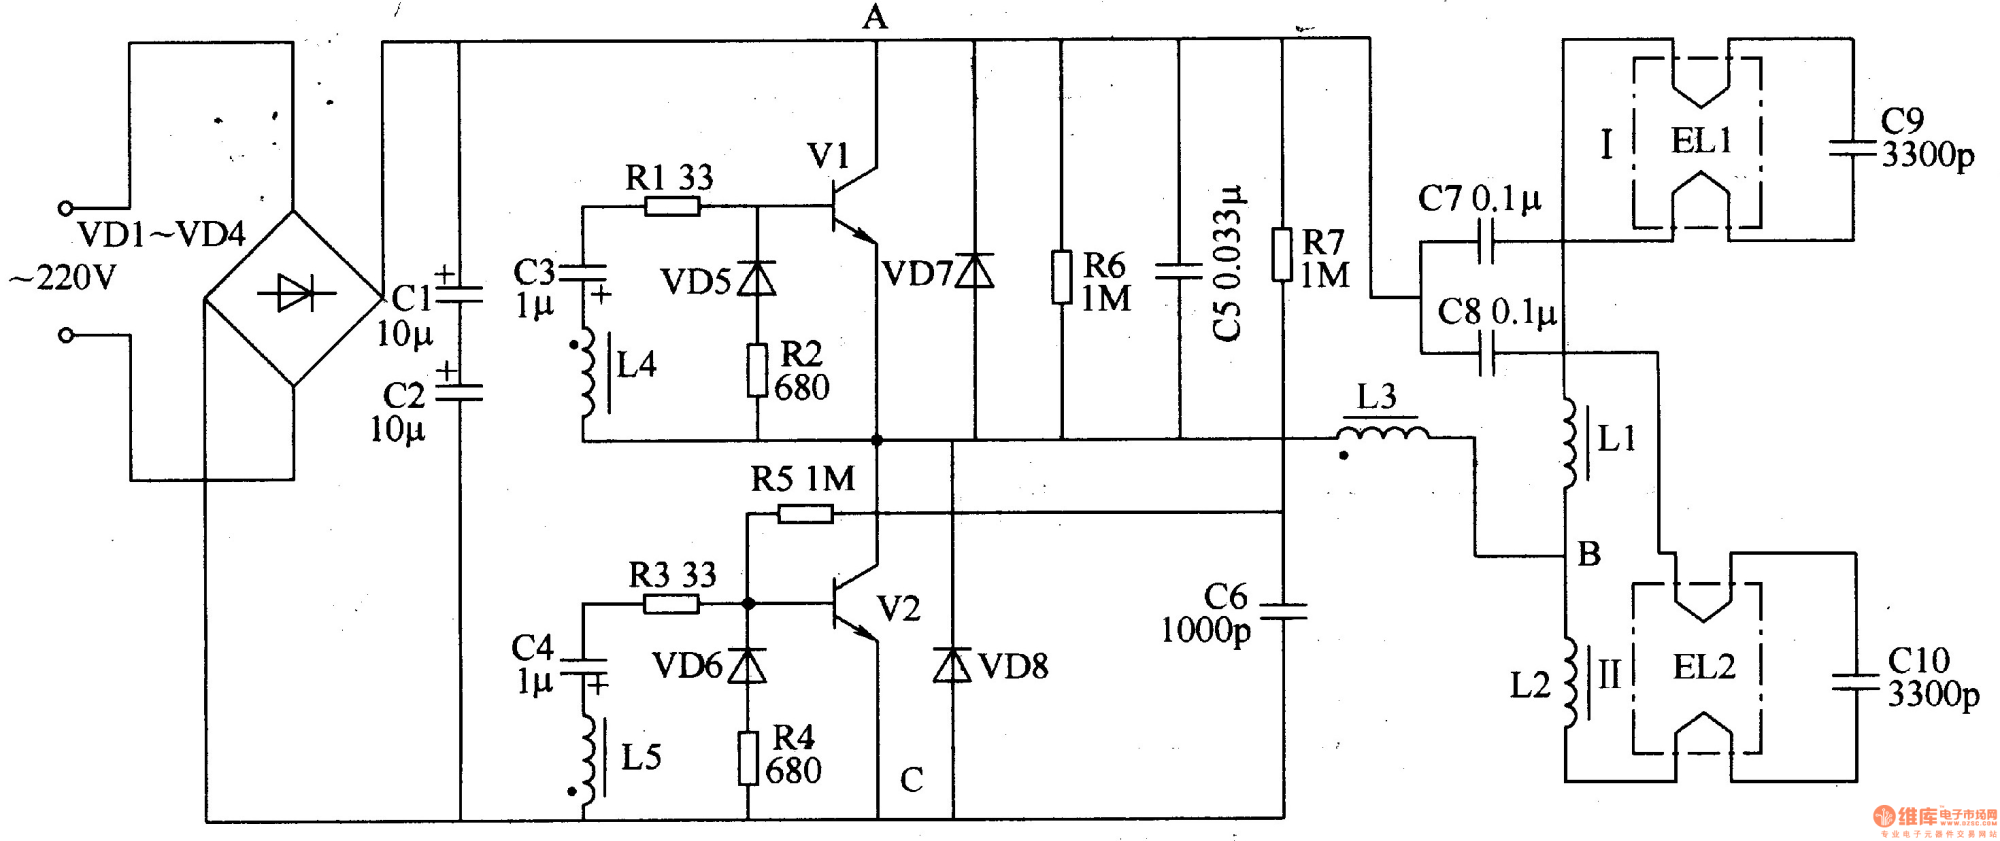 hight resolution of fluorescent circuit page 3 light laser led circuits next gr 20w fluorescent lamp electronic ballast circuit diagram powersupply